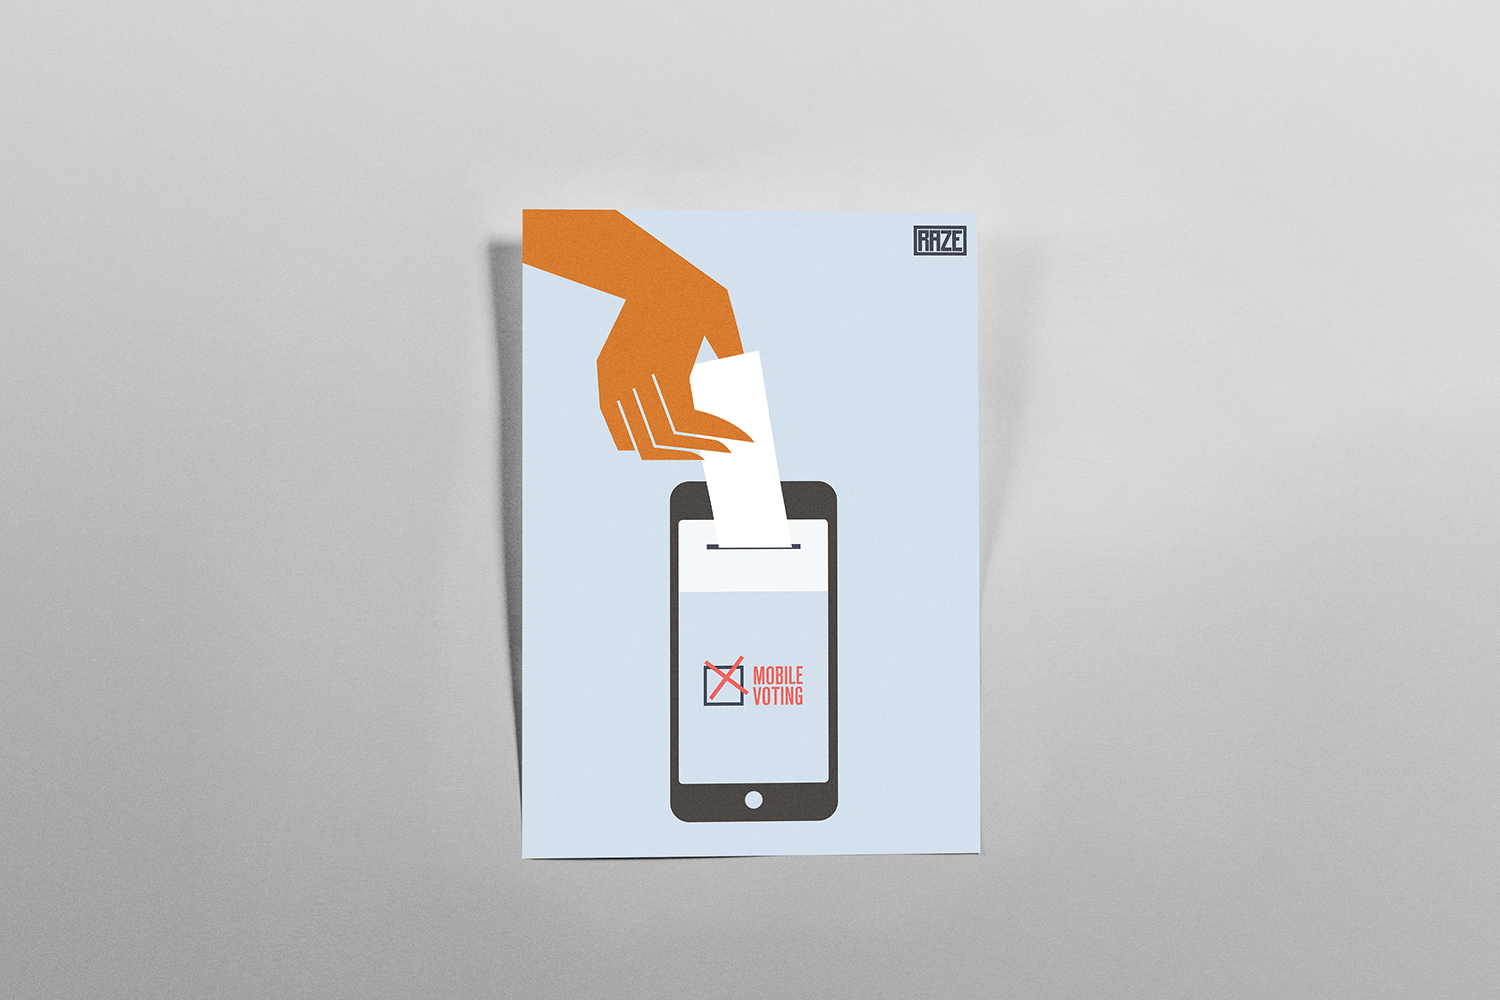 A print advertisement for a potential feature of the app: Mobile Voting